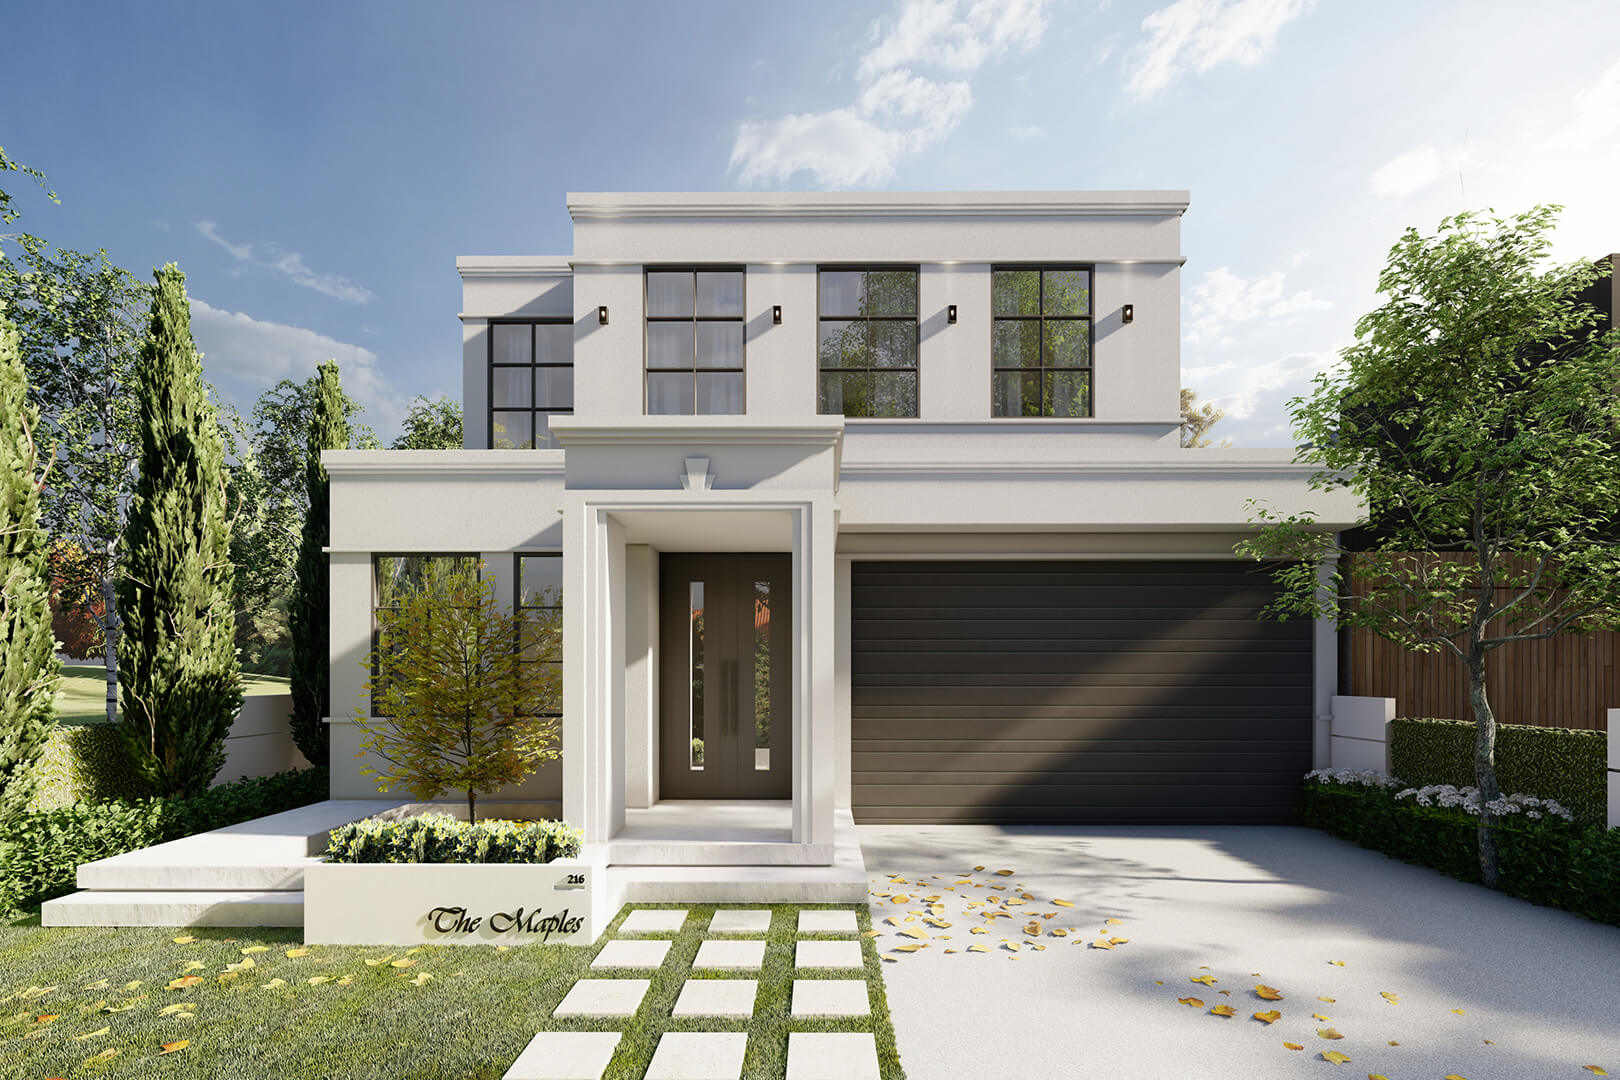 Greenvale French Provincial House - Melbourne Architecture home designed by Sky Architect Studio